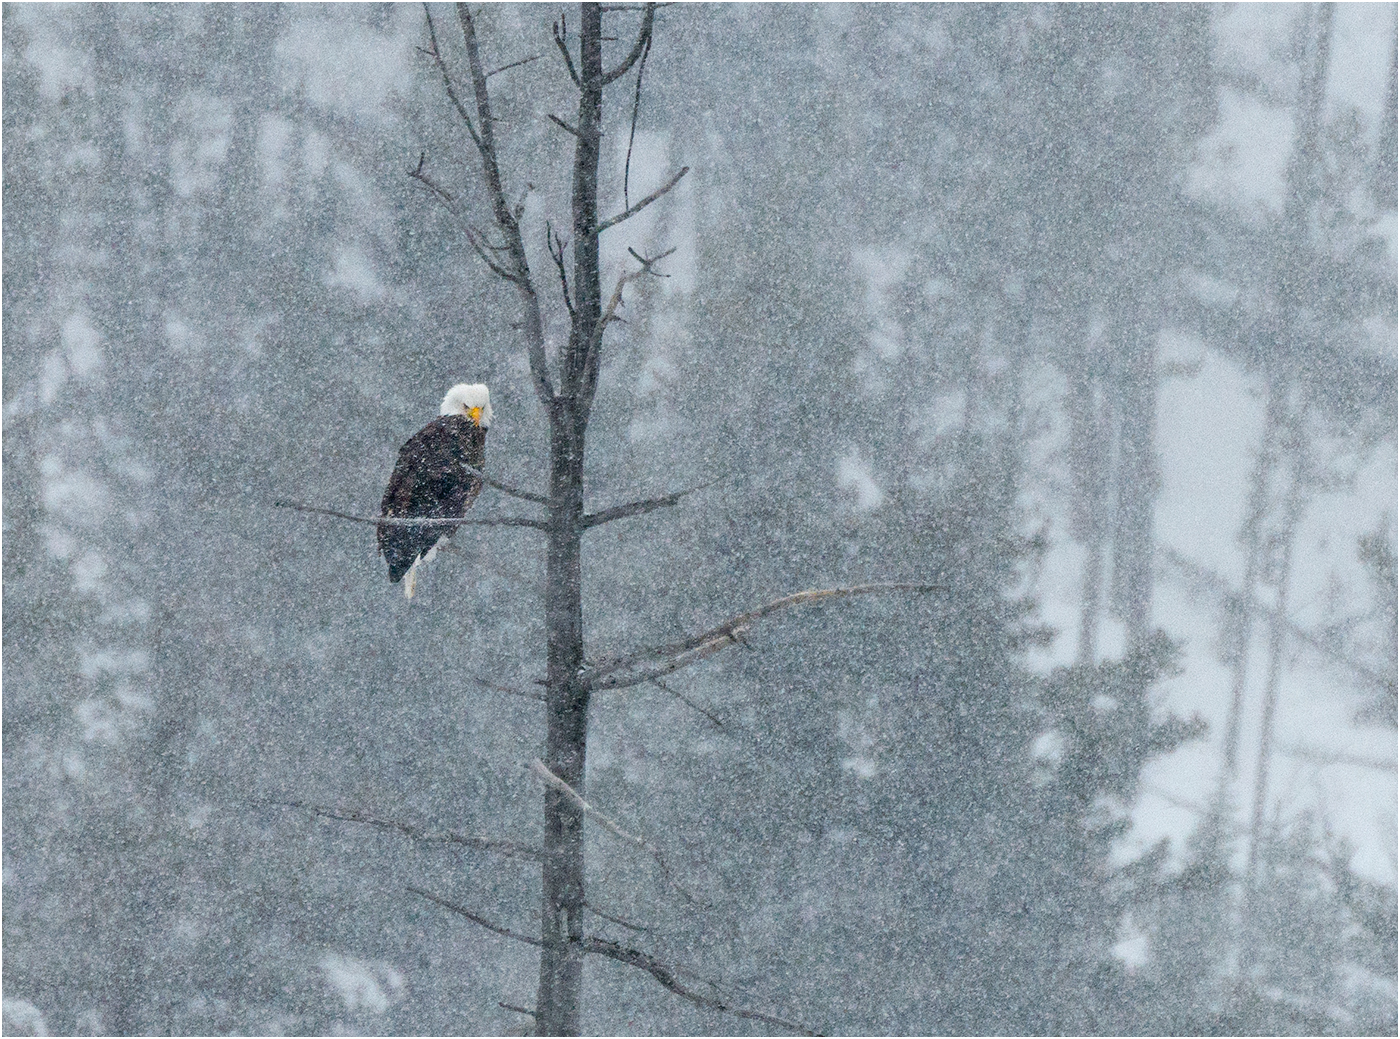 1_American Bald Eagle in a Blizzard_Ric Harding.jpg